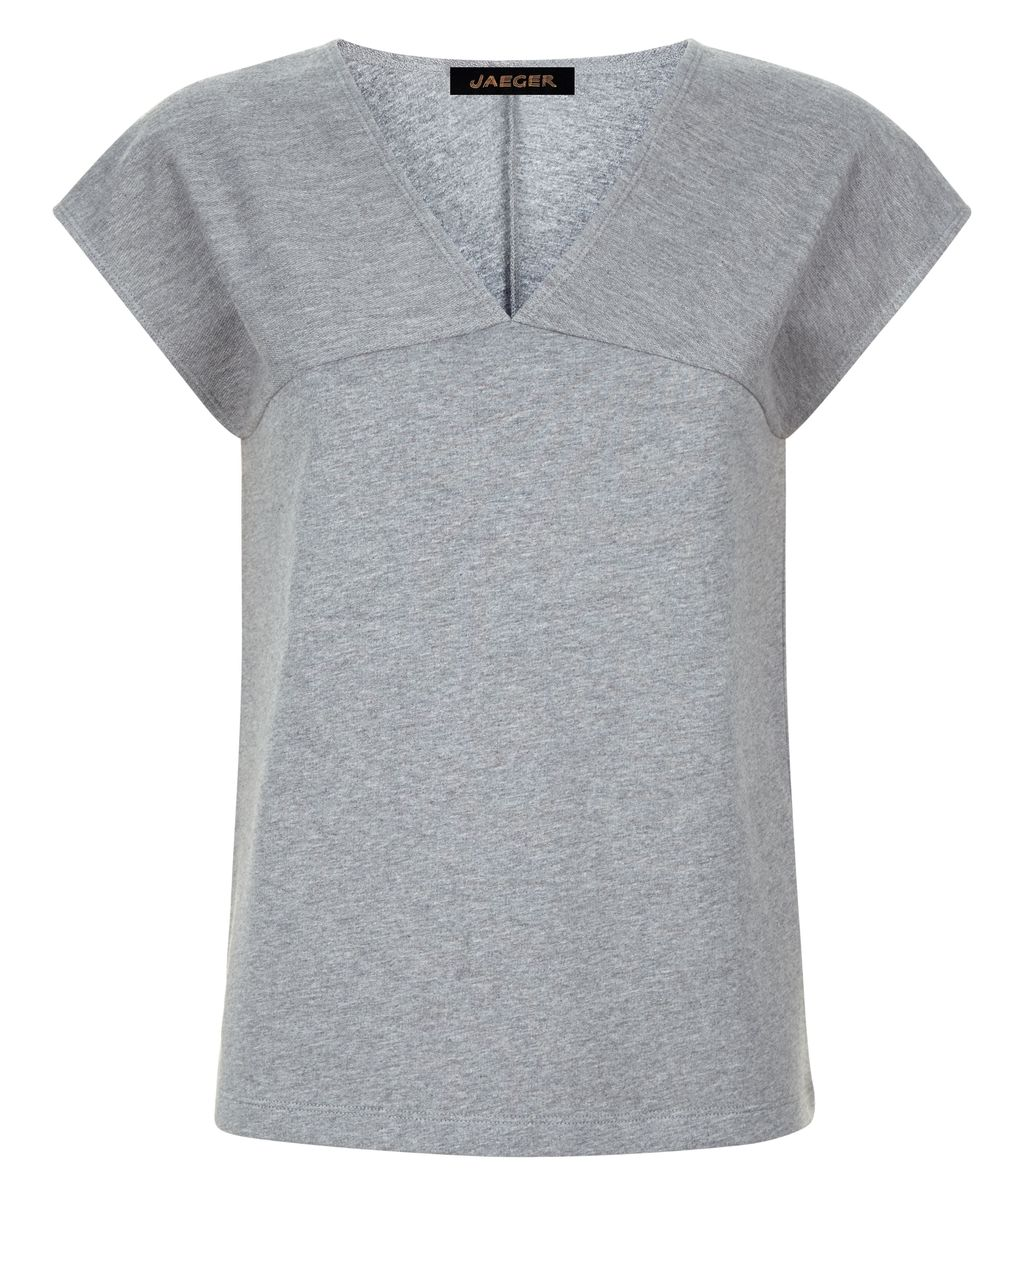 Jersey Textured Block T Shirt, Grey - neckline: v-neck; sleeve style: capped; style: t-shirt; predominant colour: mid grey; occasions: casual; length: standard; fibres: cotton - 100%; fit: straight cut; sleeve length: short sleeve; pattern type: fabric; pattern size: light/subtle; texture group: jersey - stretchy/drapey; pattern: marl; season: s/s 2016